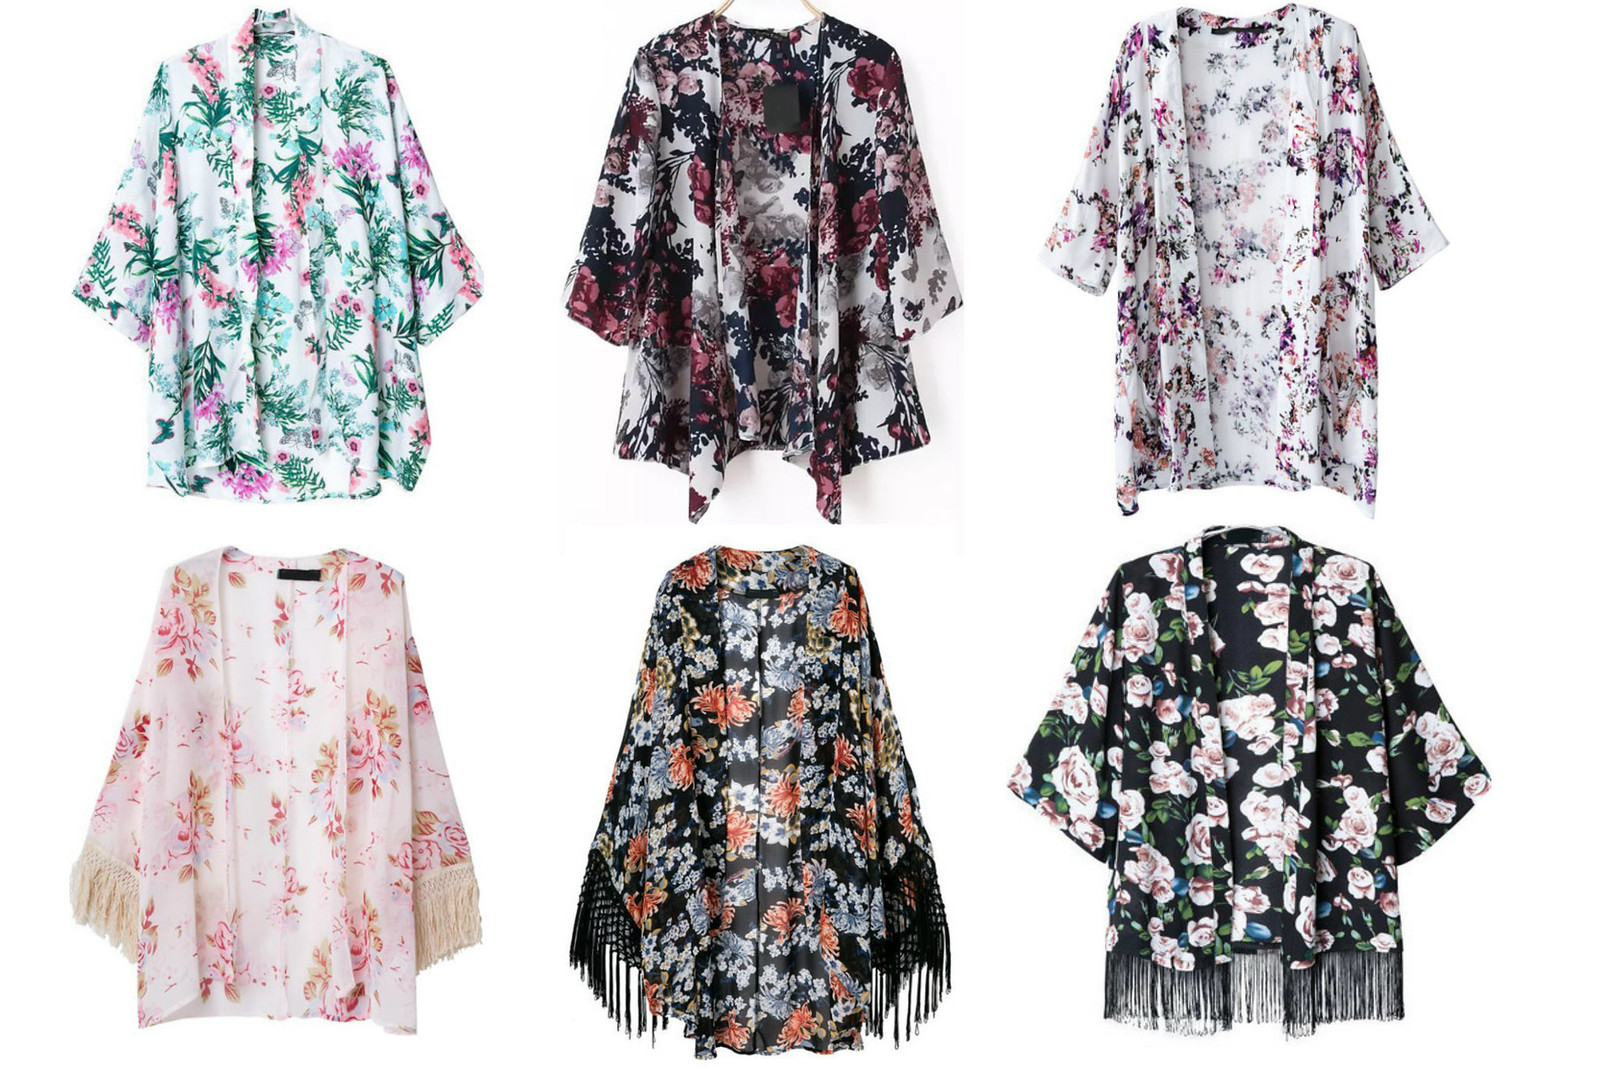 http://www.sheinside.com/White-Long-Sleeve-Floral-Loose-Kimono-p-174849-cat-1878.html